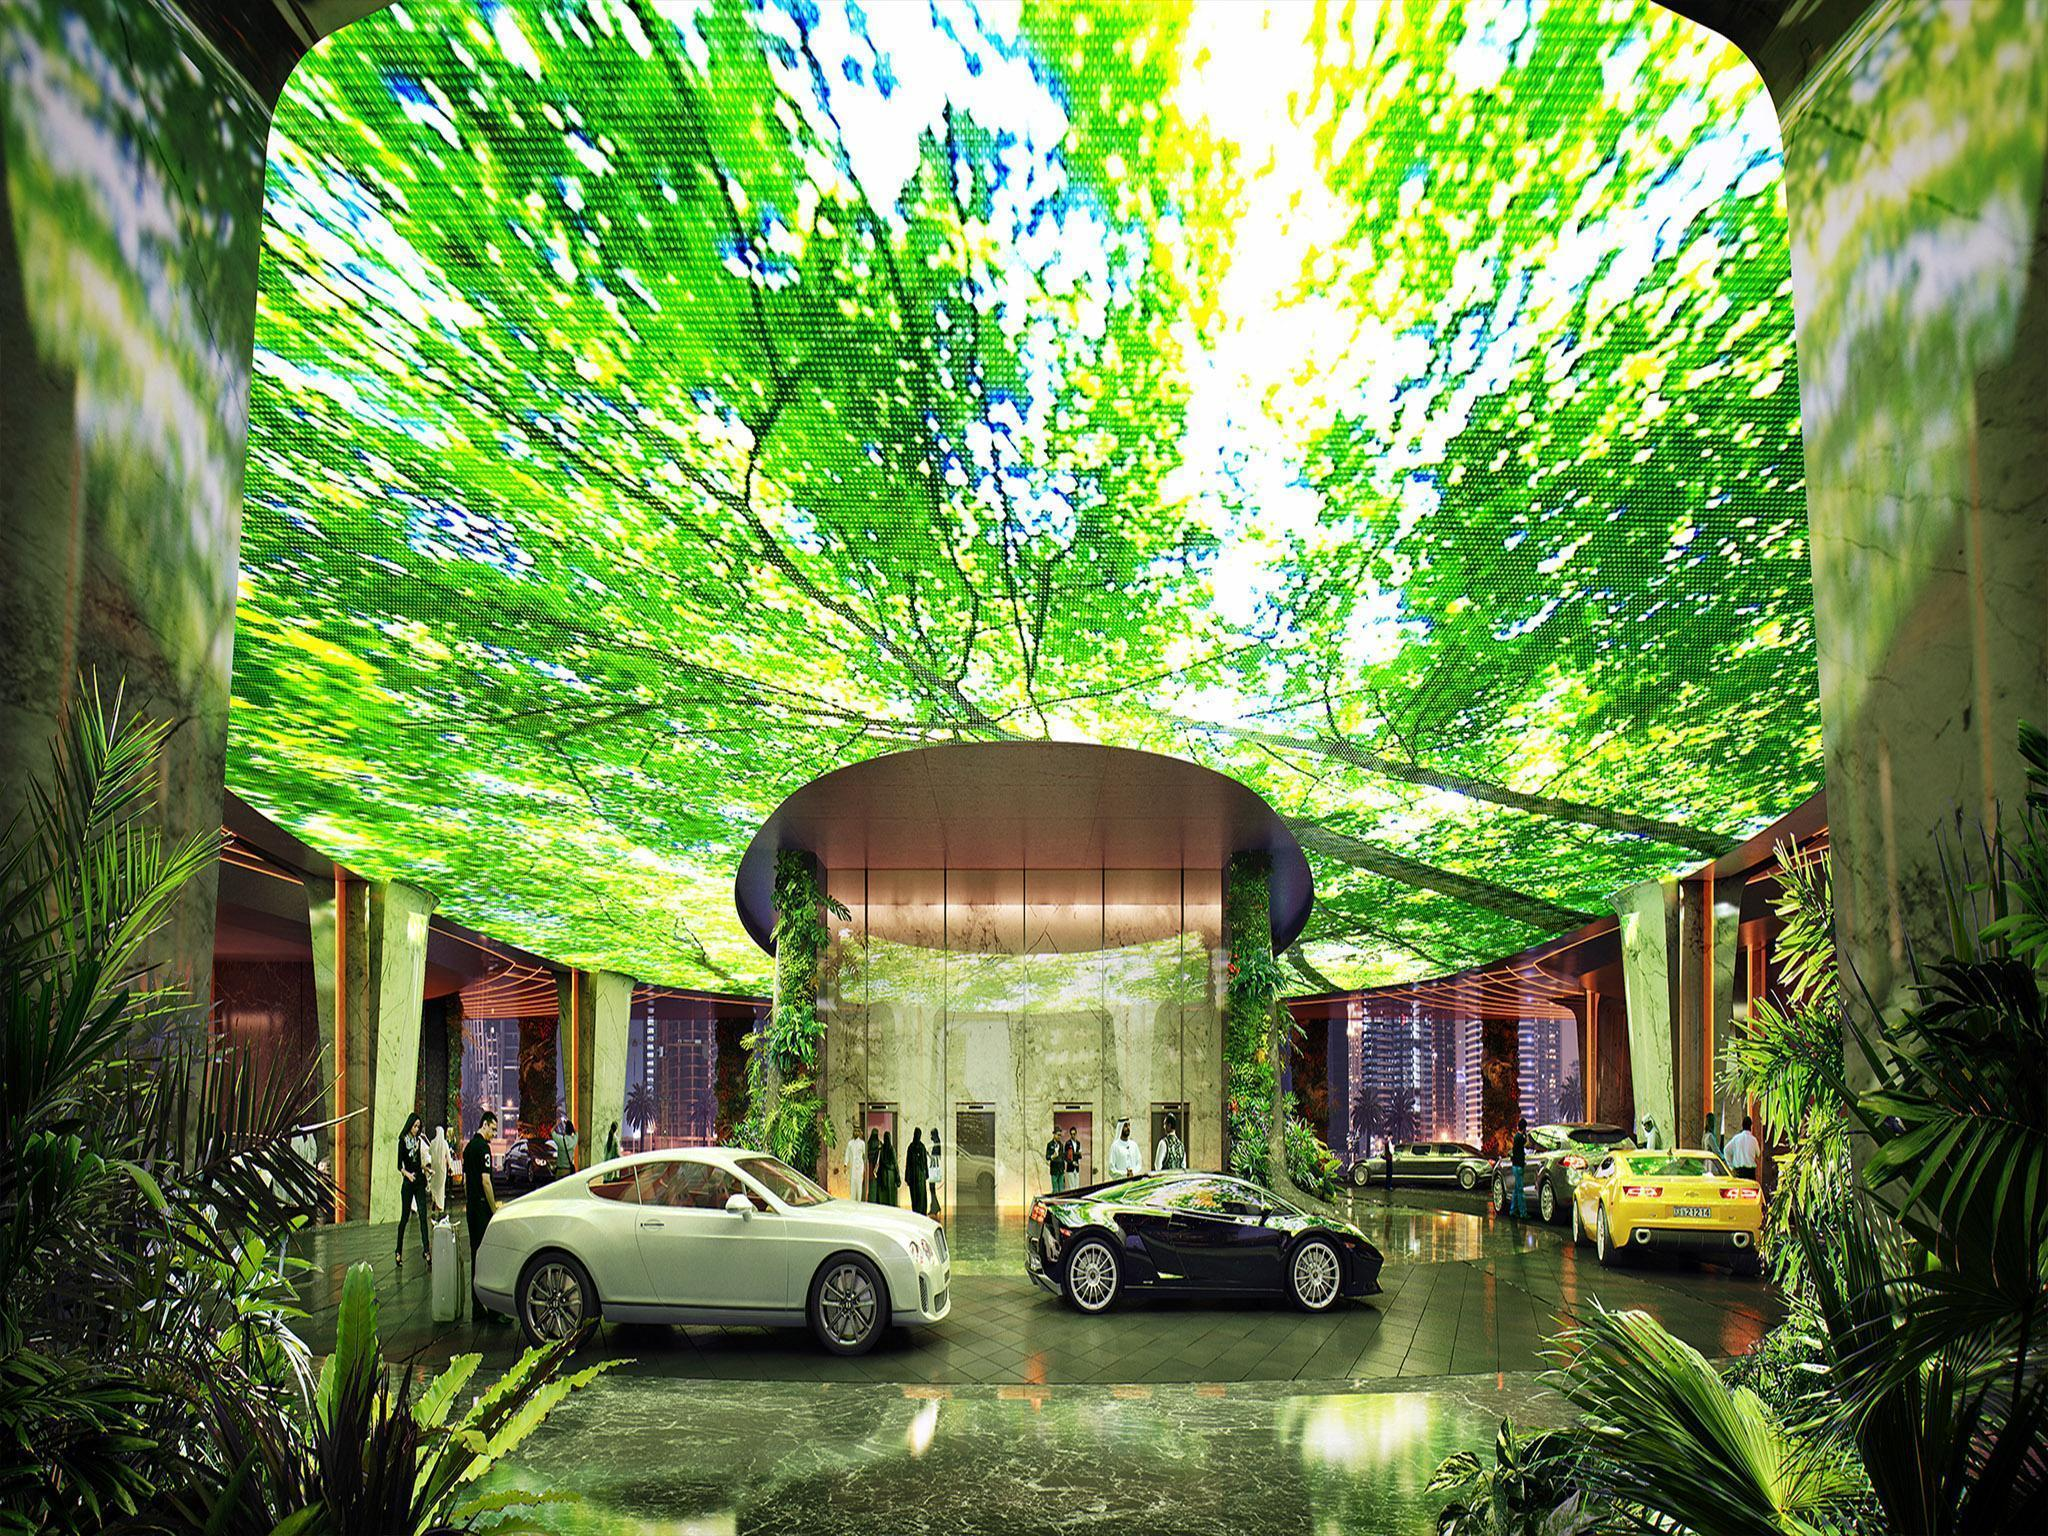 Dubai is building the world's first hotel with its own rainforest – here's what it's like inside